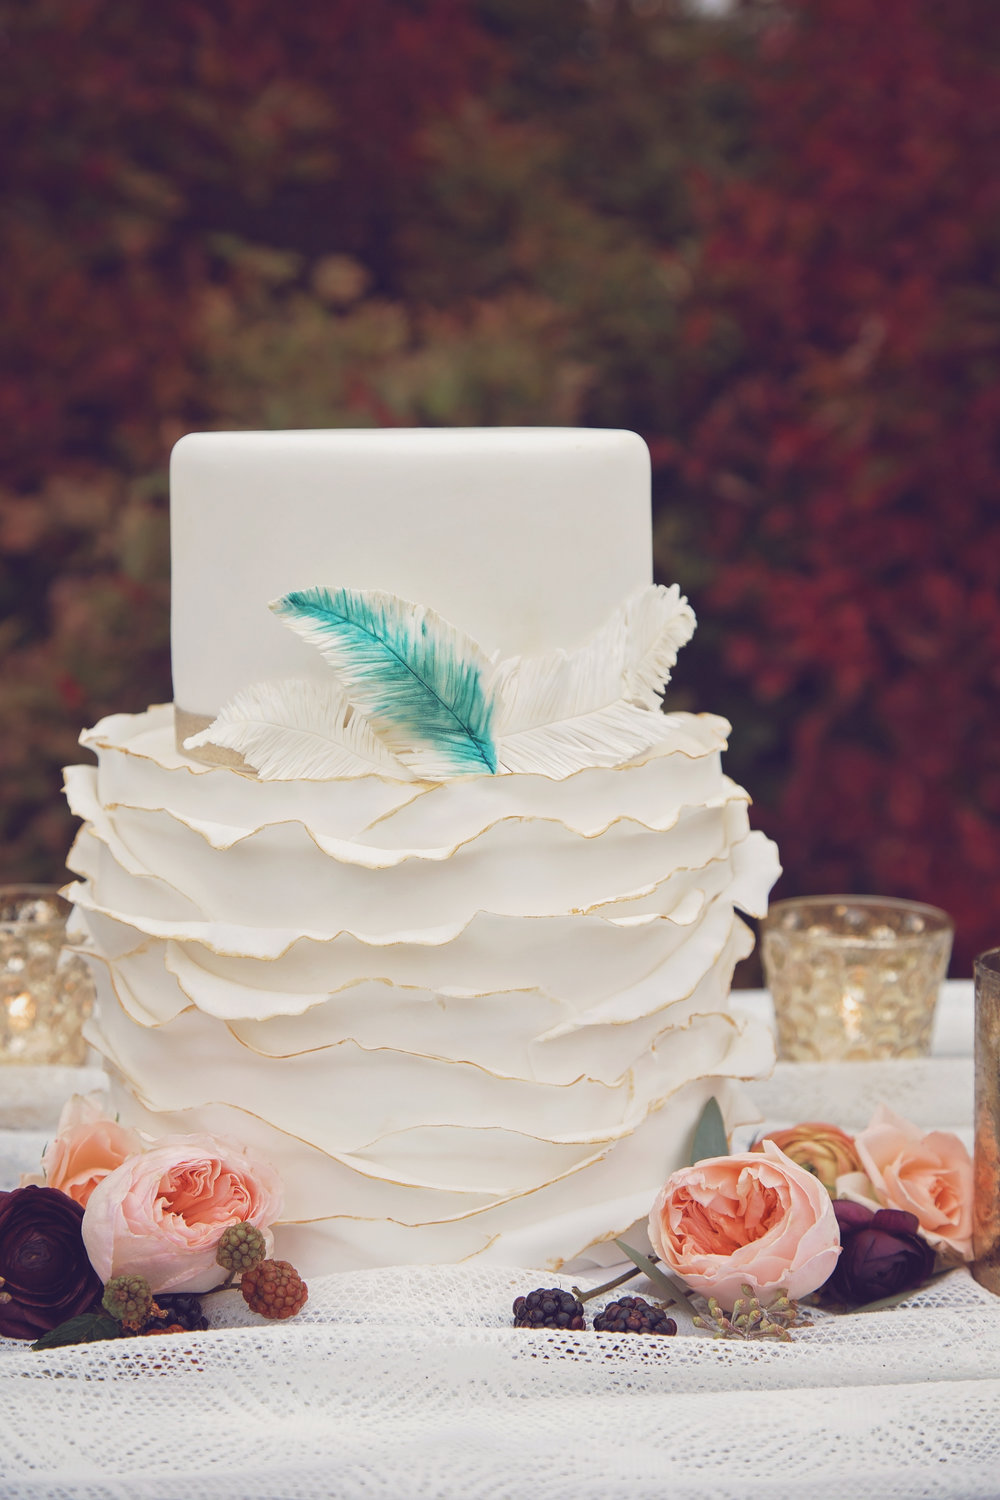 MINNESOTA WEDDING PHOTOGRAPHER | BLOOMING CREATIONS | MEANINGFUL MOMENTS EVENT PLANNING & COORDINATION | Blue Bird Cakery | INTUITION WEDDINGS BY ID PHOTOGRAPHY